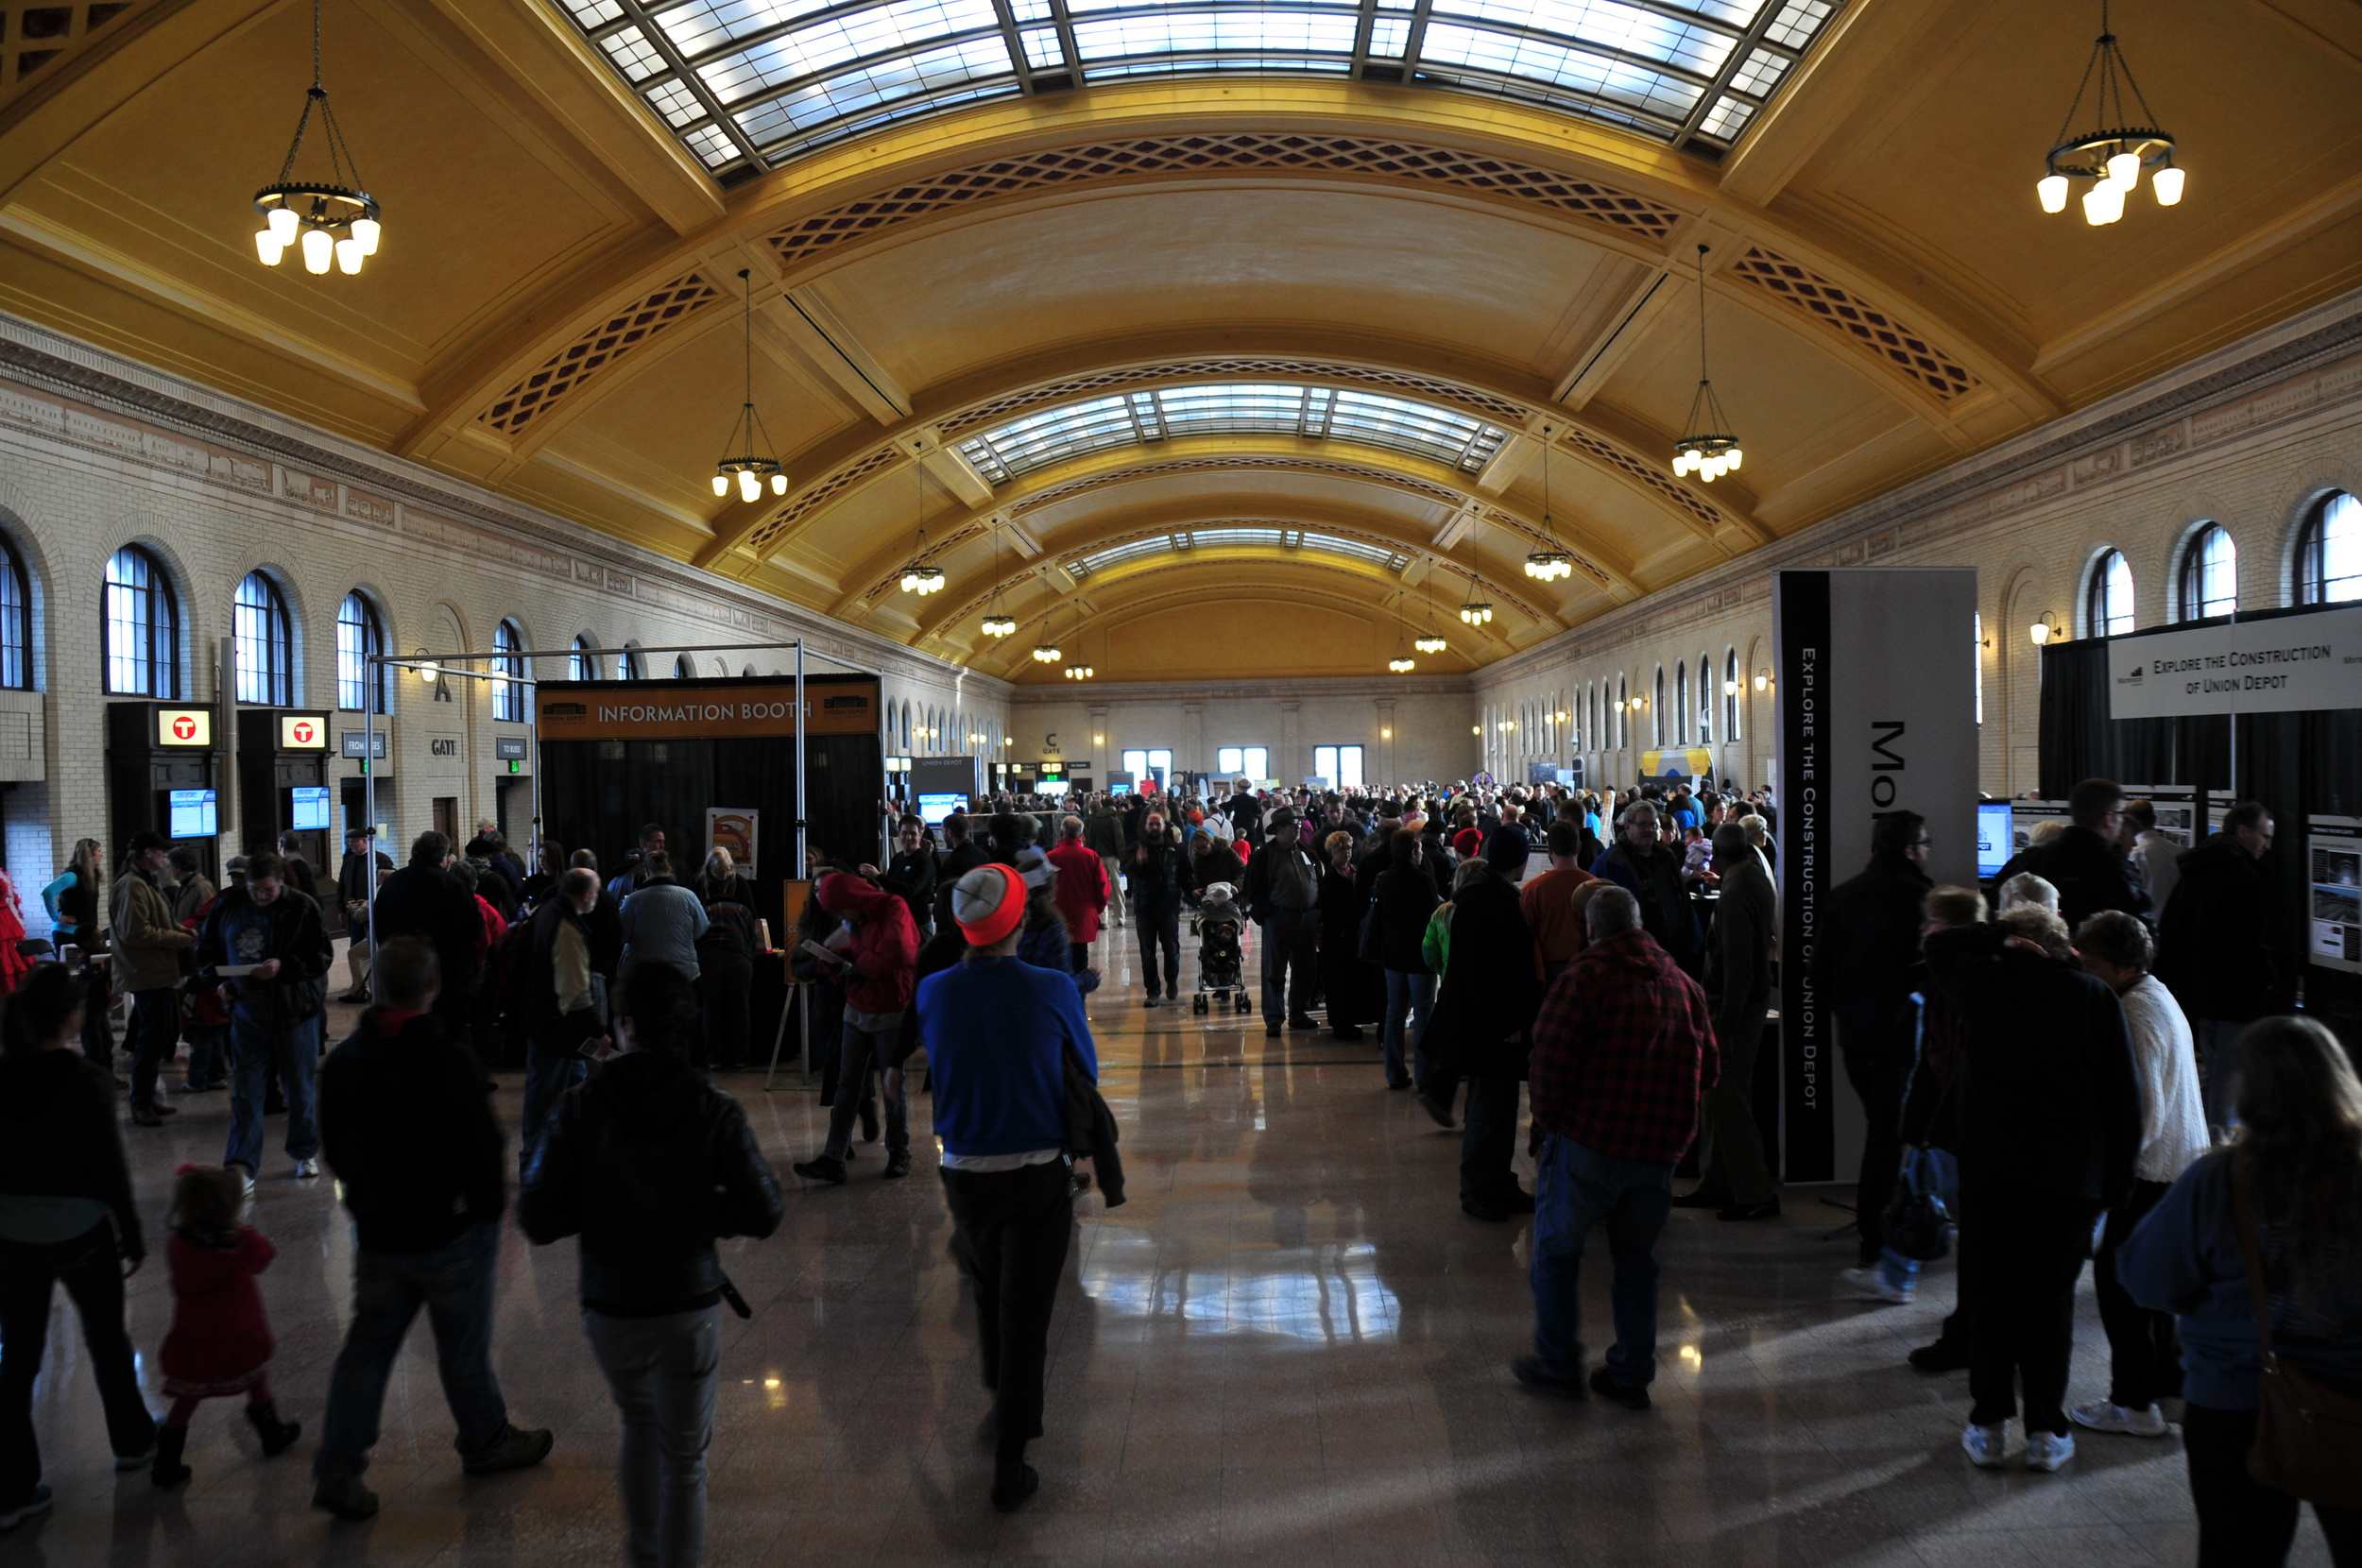 St_Paul_Union_Depot_Waiting_Room_Opening_Day_3.jpg